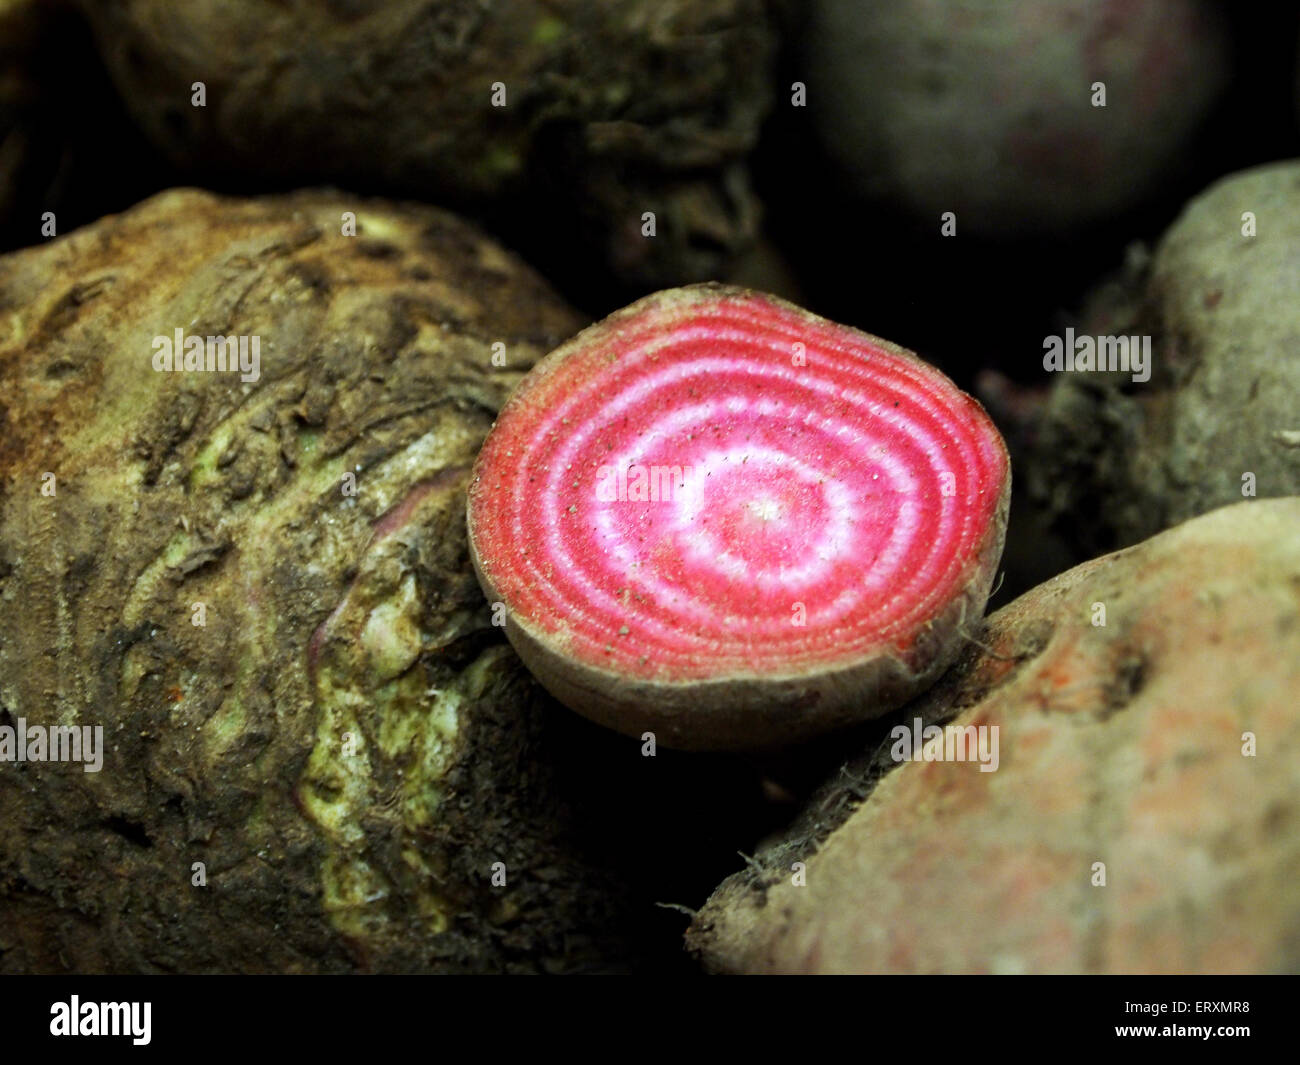 open beetroot close up - Stock Image